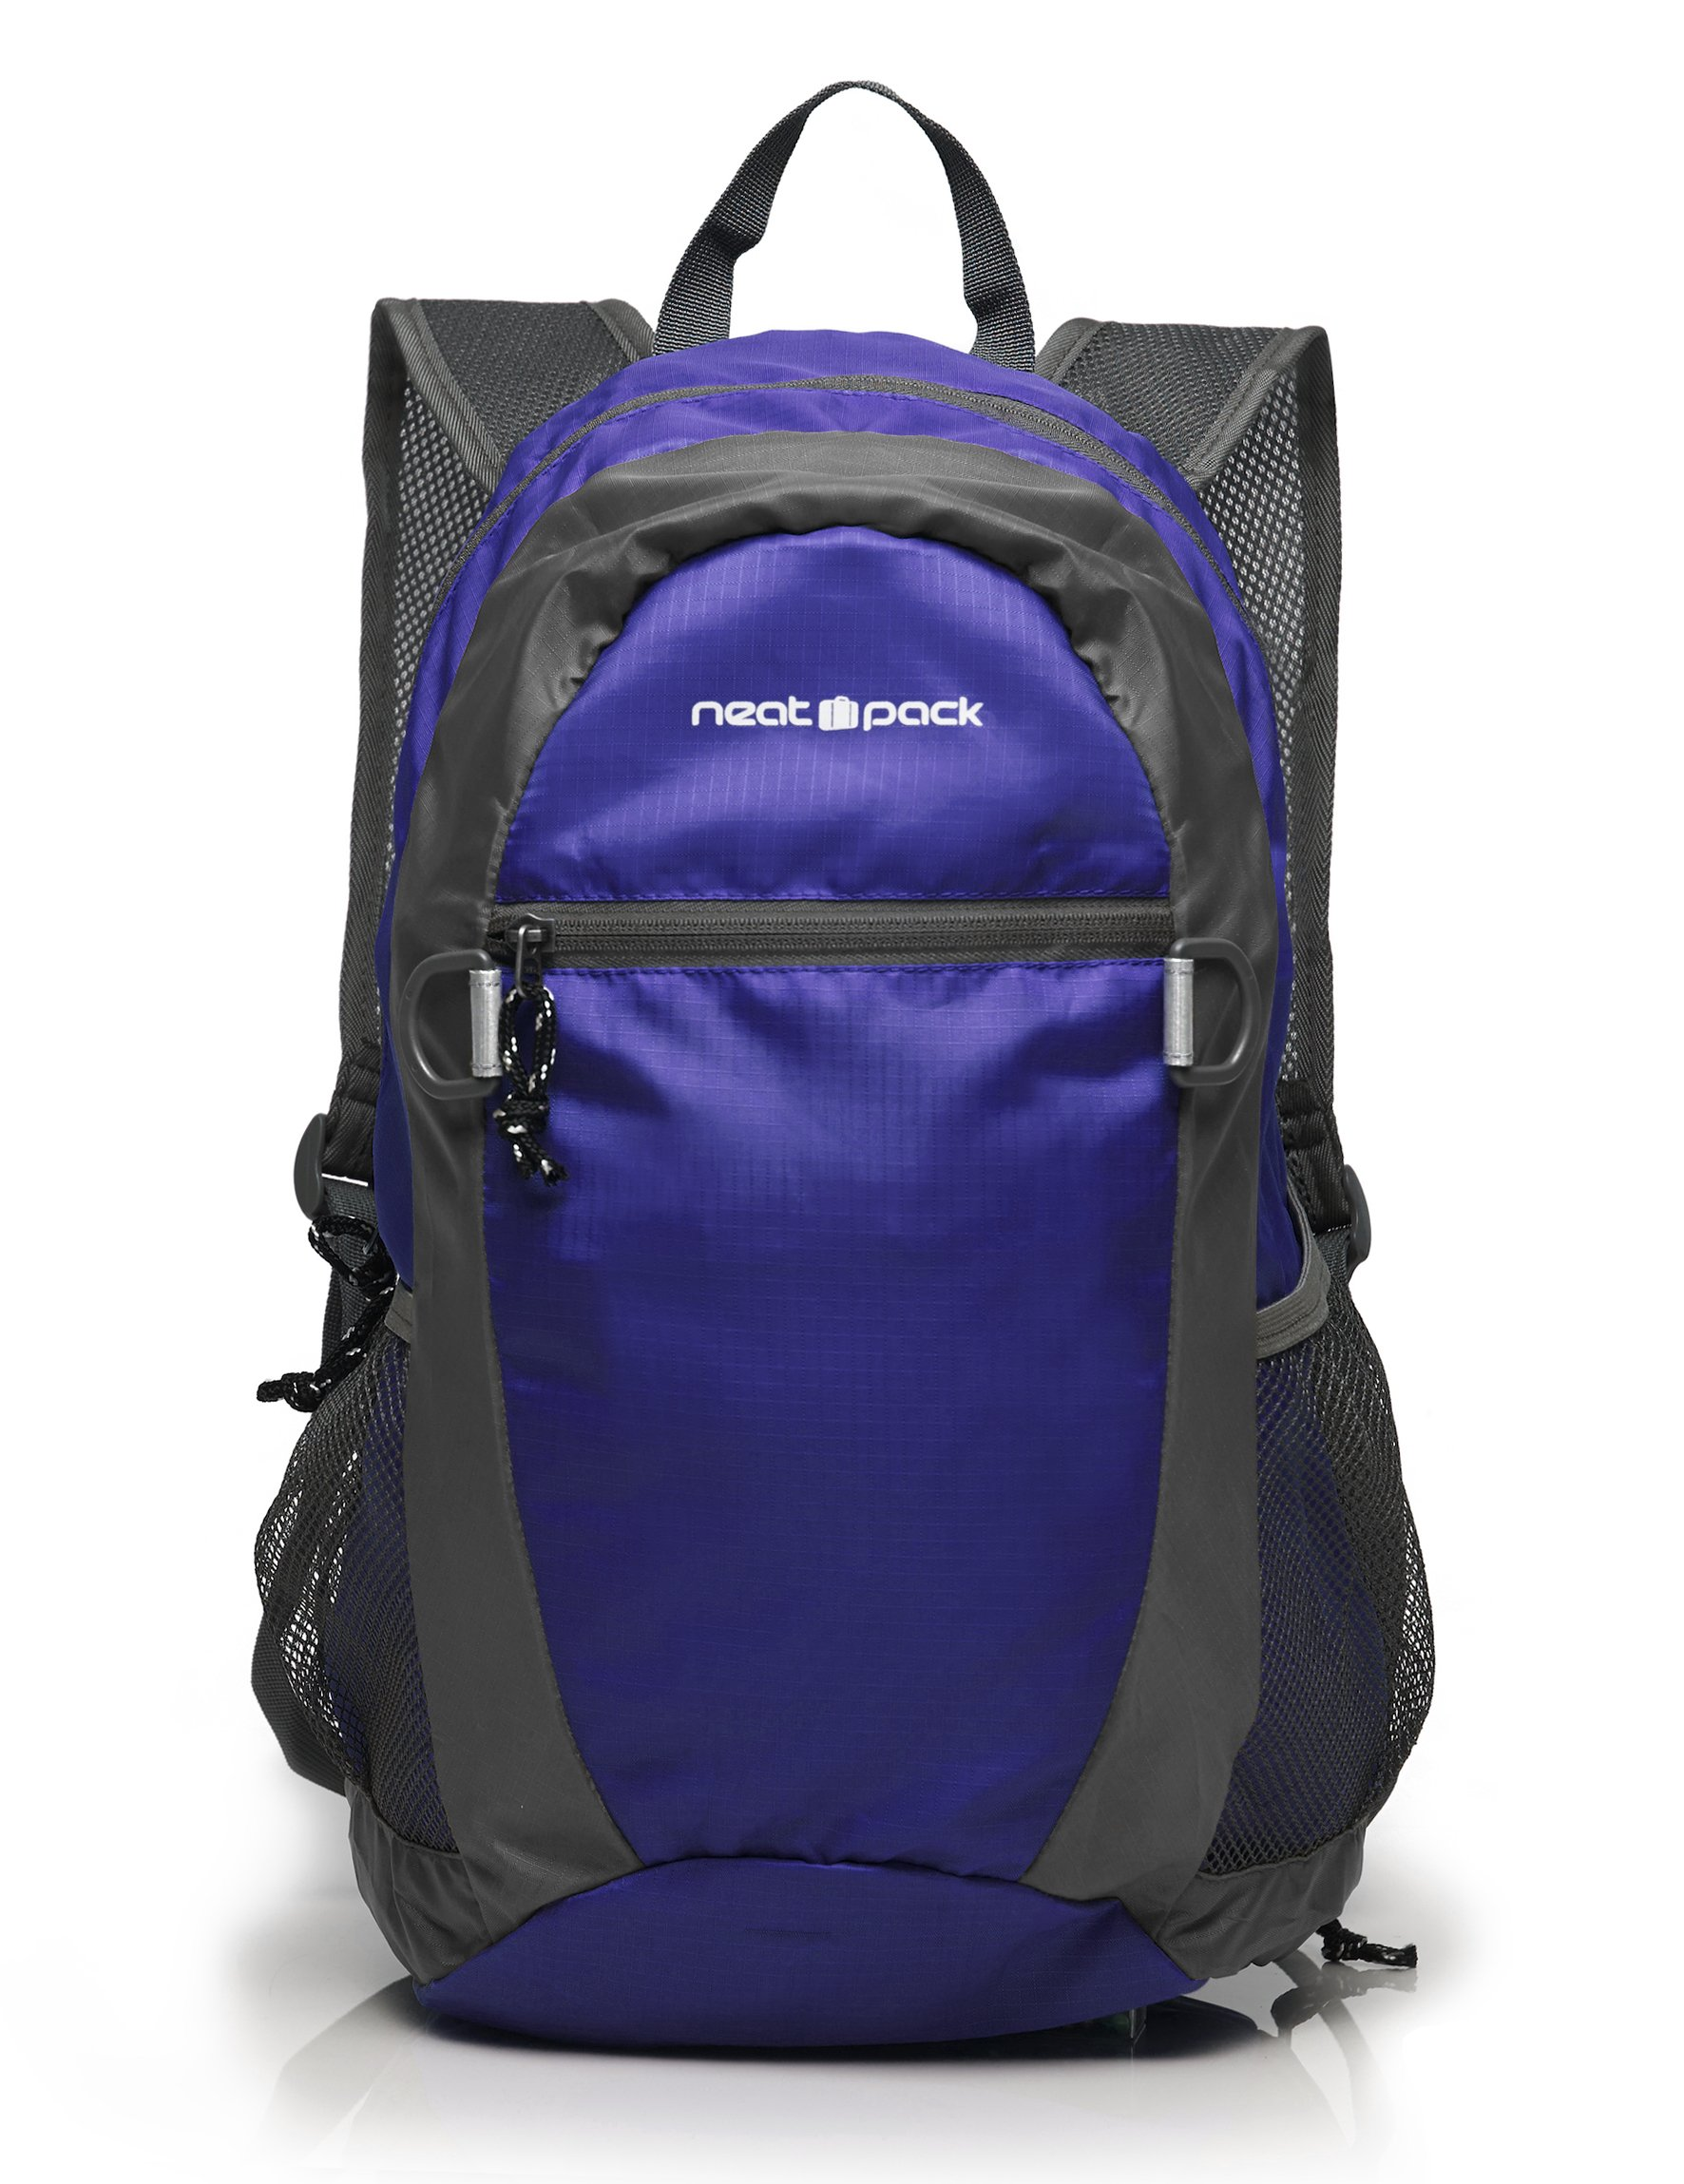 NeatPack Durable, Foldable Nylon Backpack/Daypack with Security Zippers, 20L (Navy)